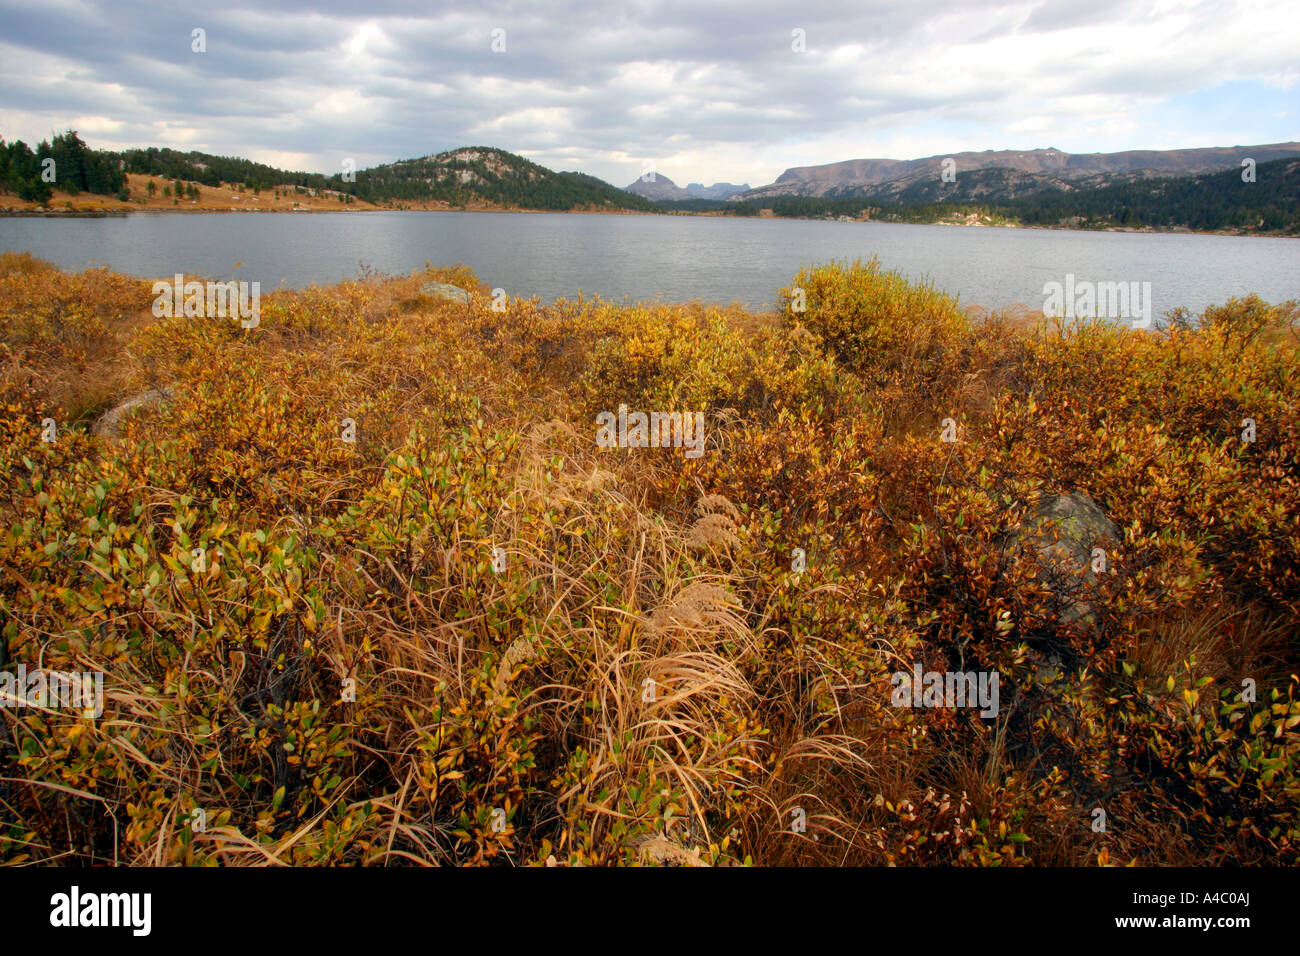 island lake off the beartooth highway, shoshone national forest, wyoming Stock Photo